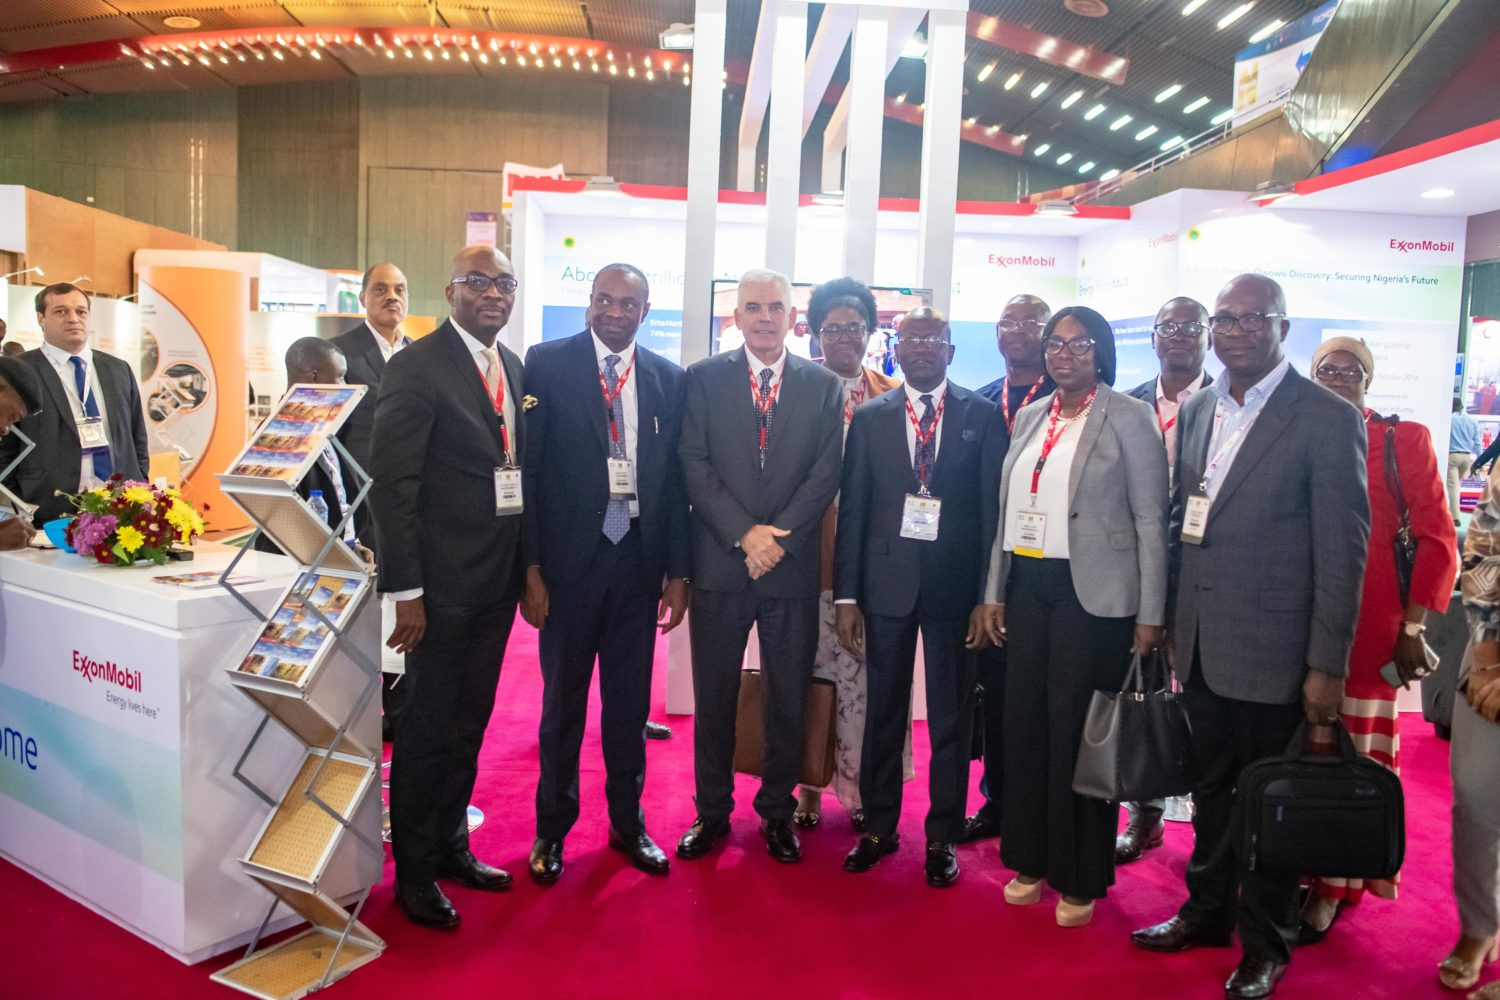 2.       NOG Photo 2: ExxonMobil Nigeria's Management team at the 2019 Nigeria Oil and Gas Conference and Exhibitions in Abuja: L-R Oge Udeagha, Manager Media and Communications; Udom Inoyo, Vice Chairman; Paul McGrath, Chairman/Managing Director; Eme Udom, GM Venture Relations; Niyi Idowu, GM External Relations; Tony Abbah, Manager VR; Omolola Ani, GM Wells; Ozemoya Okordion, Government Relations Advisor; Segun Banwo, ED/CFO.